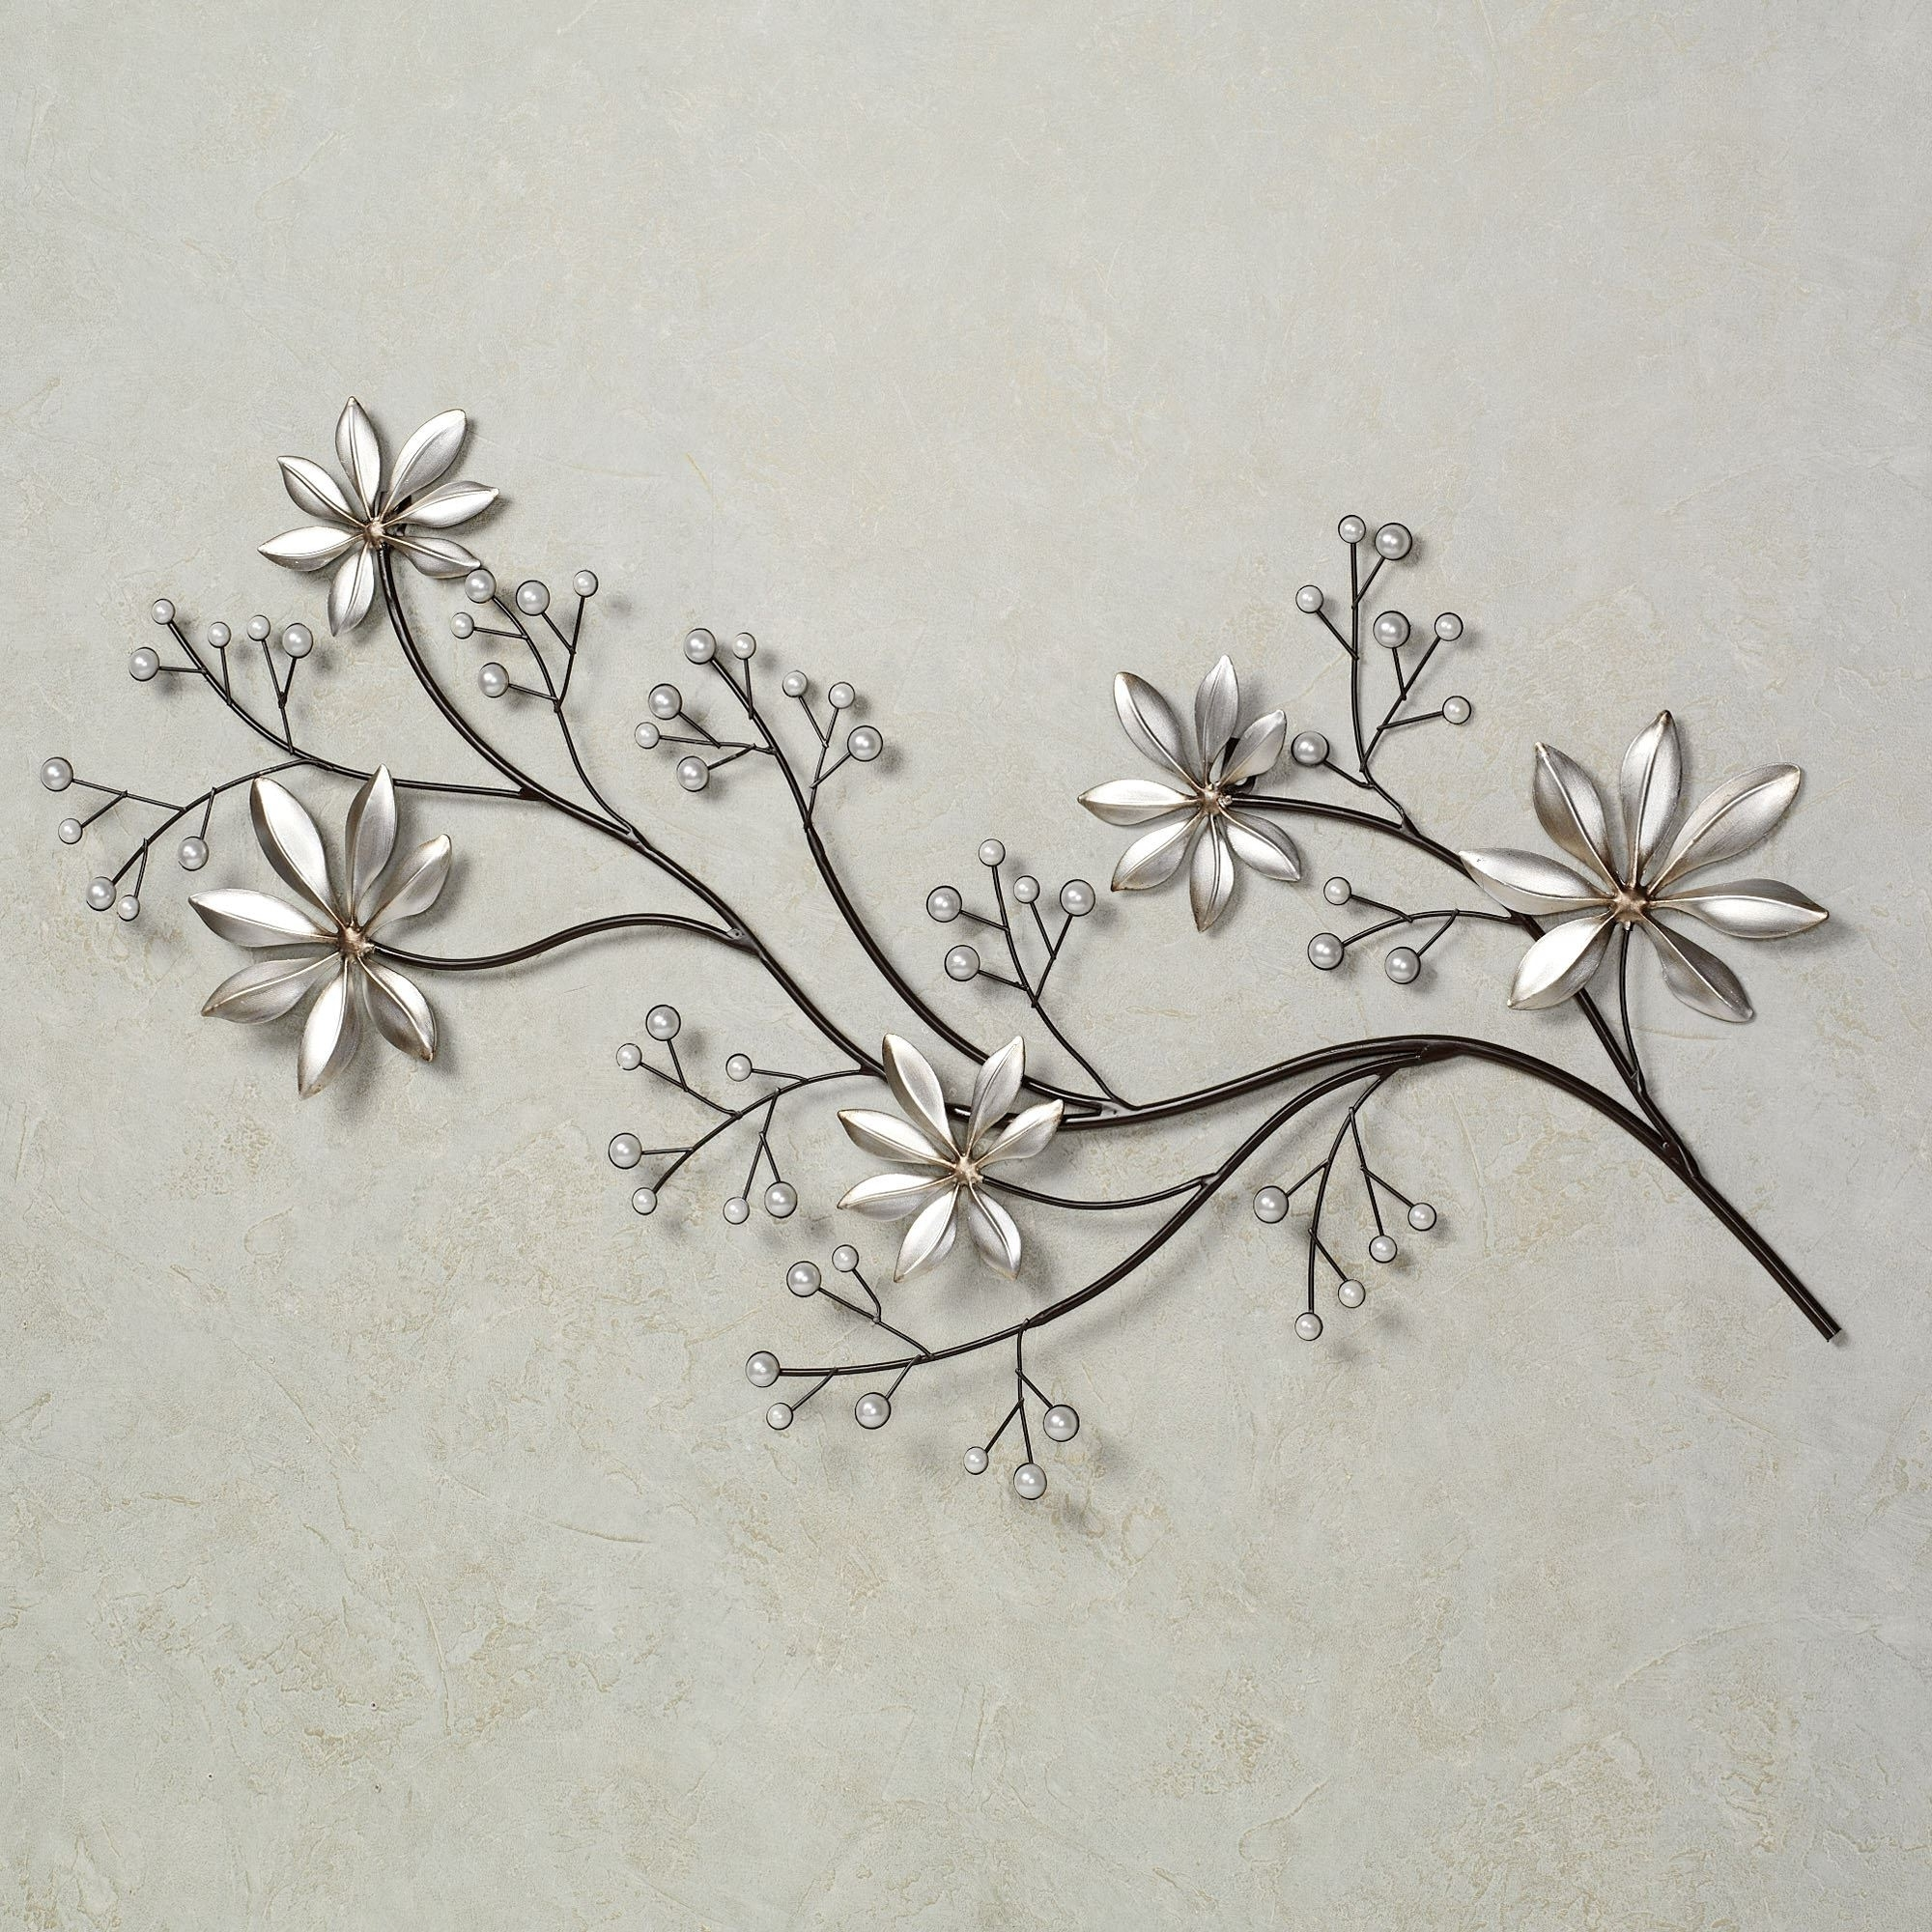 Flowers Wall Accents Intended For Famous Wall Decor : Arch Wall Decor Round Wall Decor Metal Artwork For (View 7 of 15)